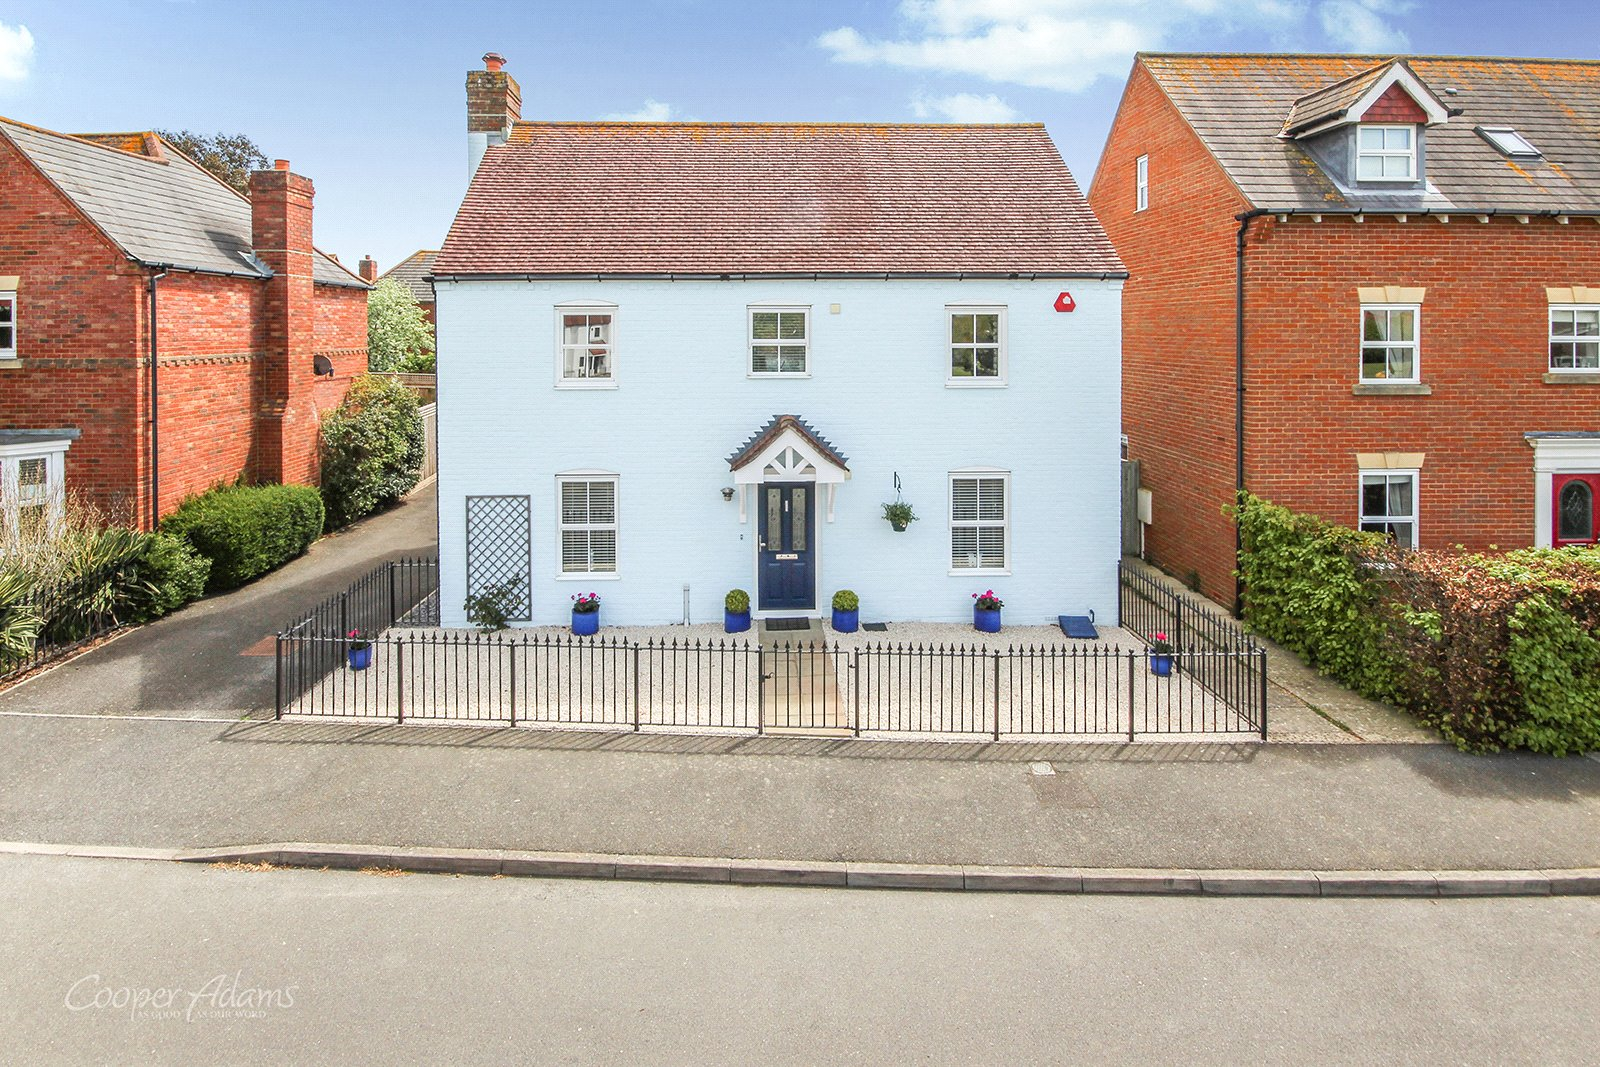 4 bed house for sale in William Olders Road, Angmering  - Property Image 1